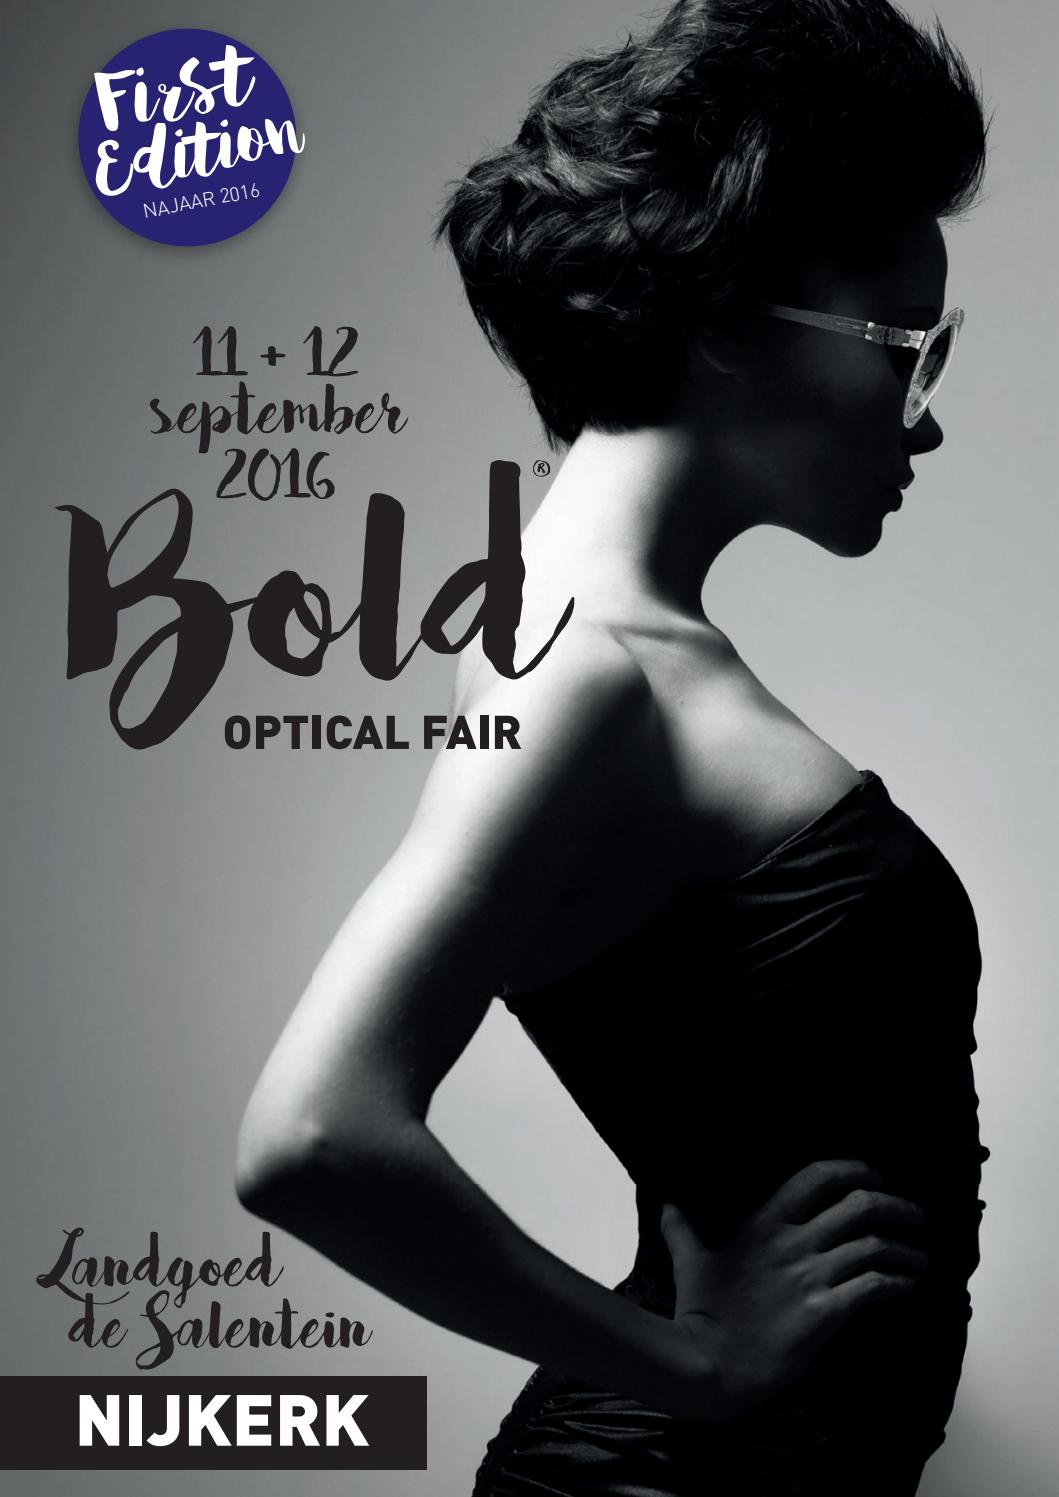 Bold magazine najaar 2016 by Bold Optical Fair - issuu